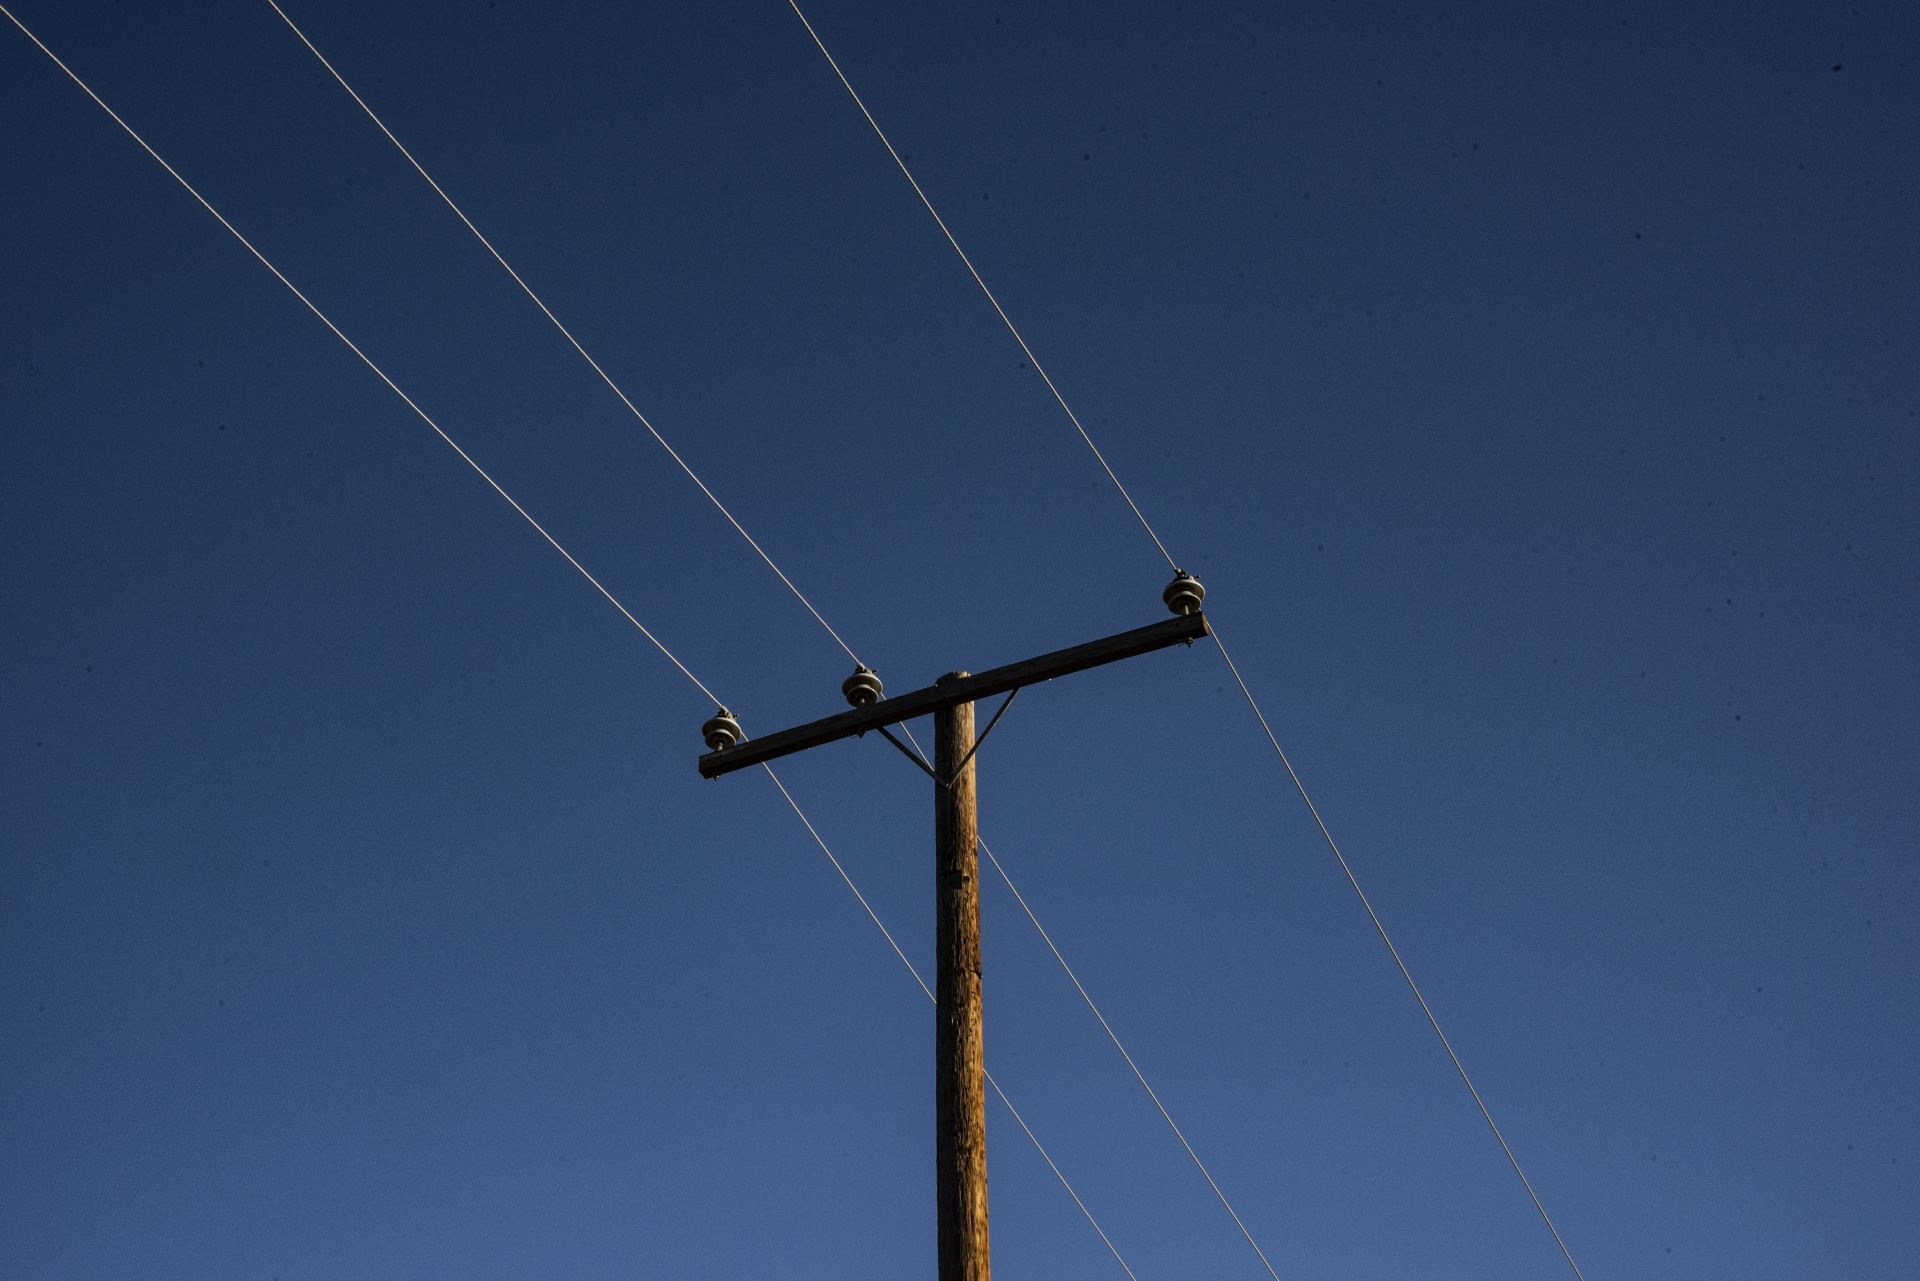 Retro Telephone Pole with Power Lines